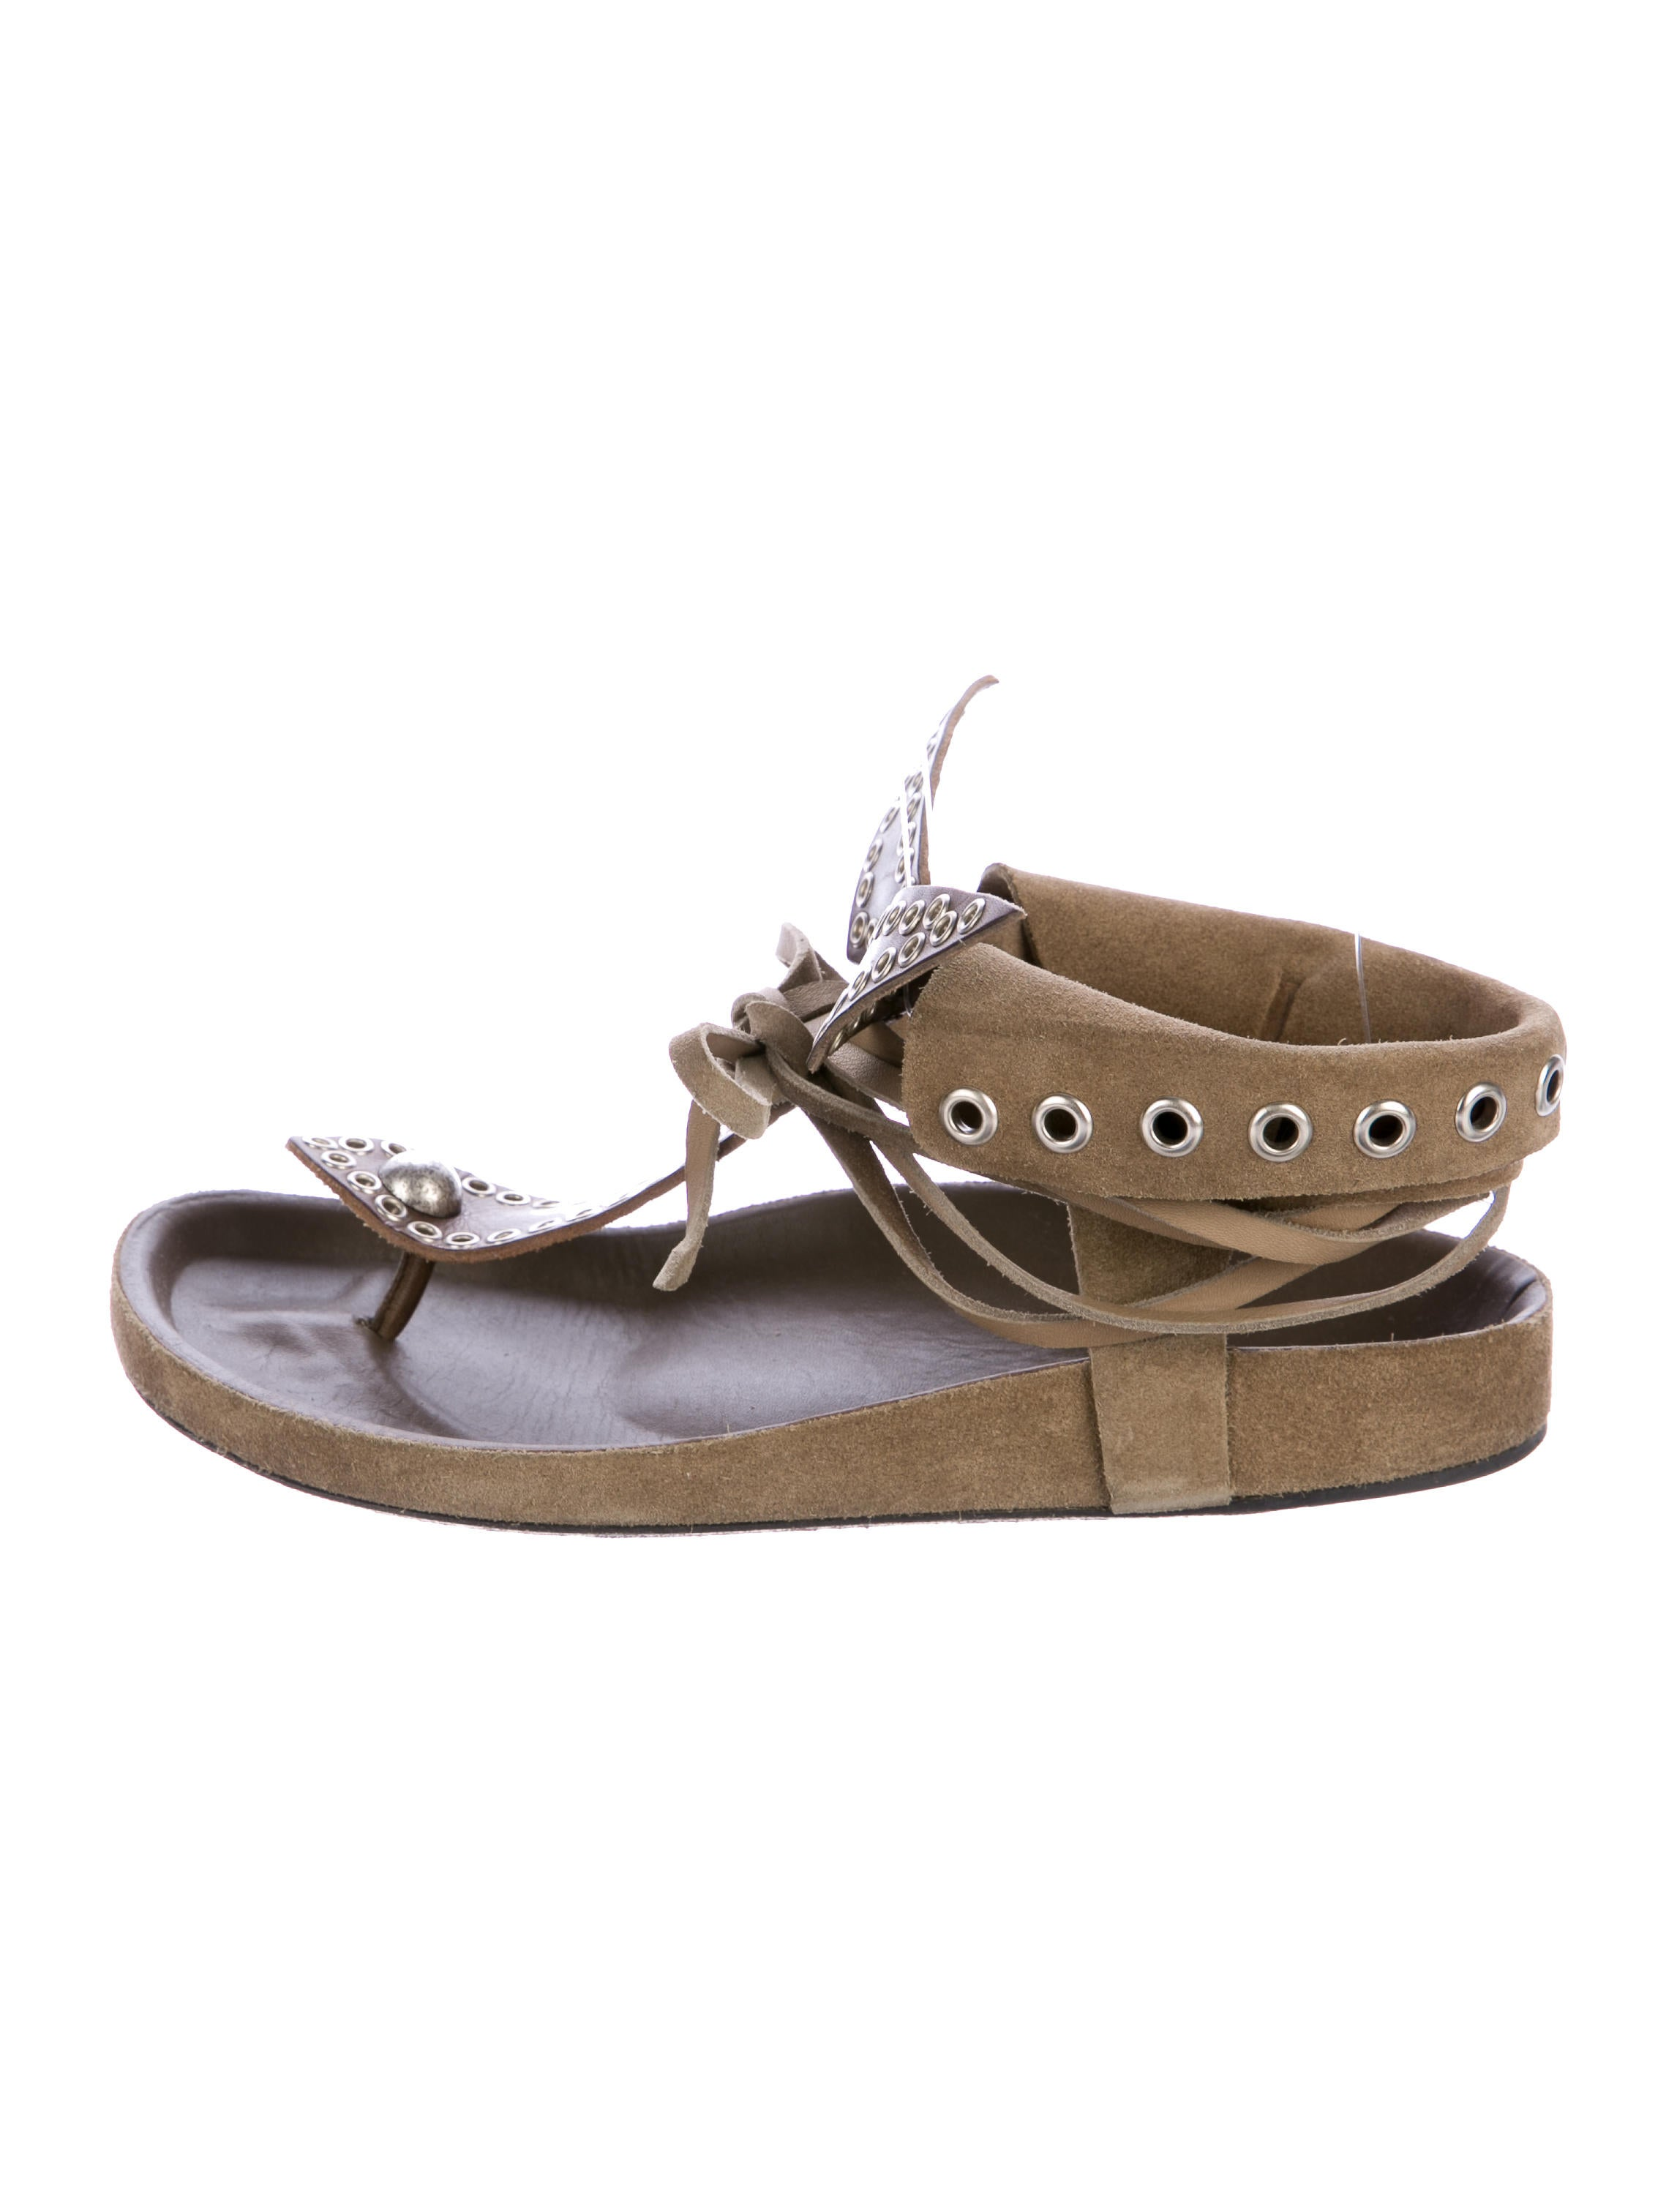 Isabel Marant Edris Grommet Sandals new sale online cheap sale hot sale clearance websites cheap factory outlet NFYARO